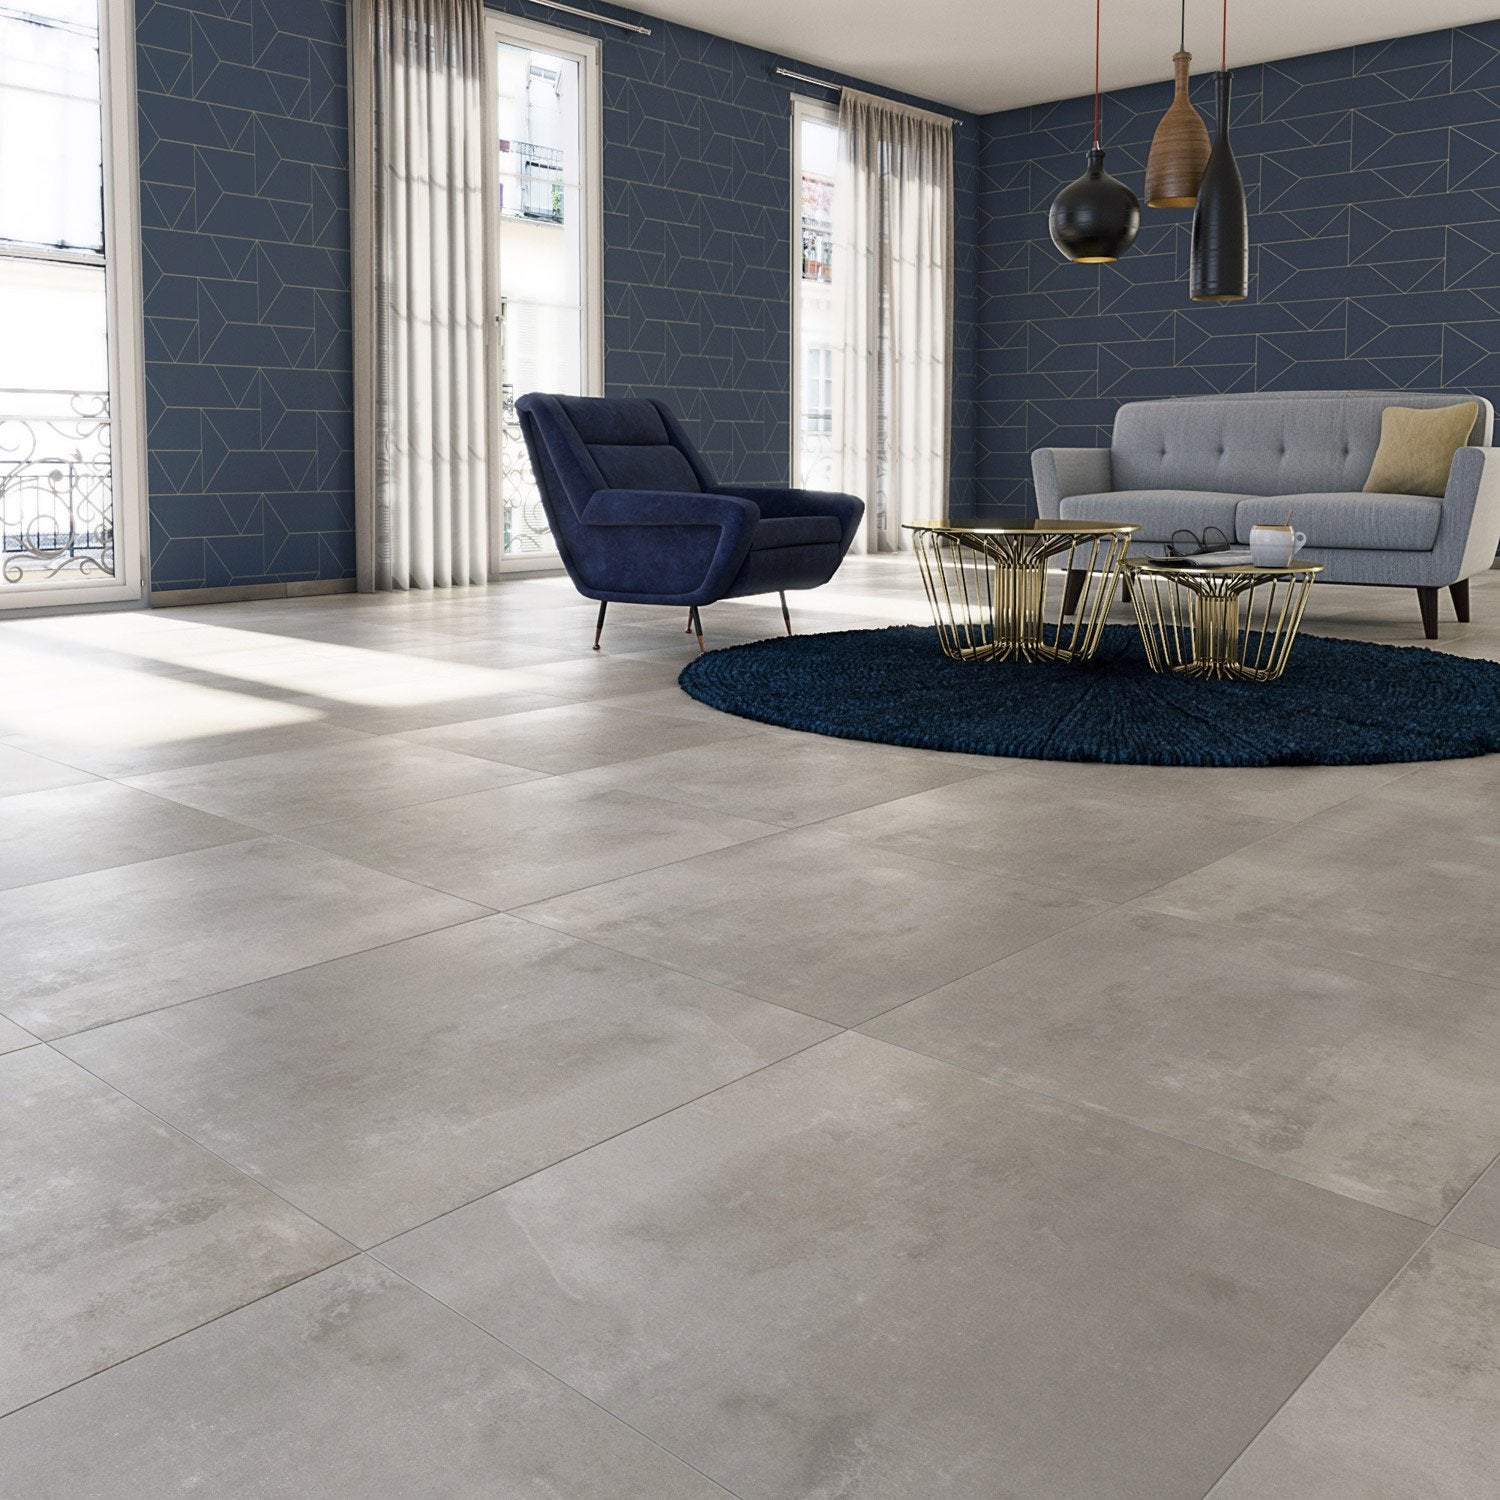 Carrelage 60x60 gris clair interesting beton cire for Carrelage 60x60 gris clair